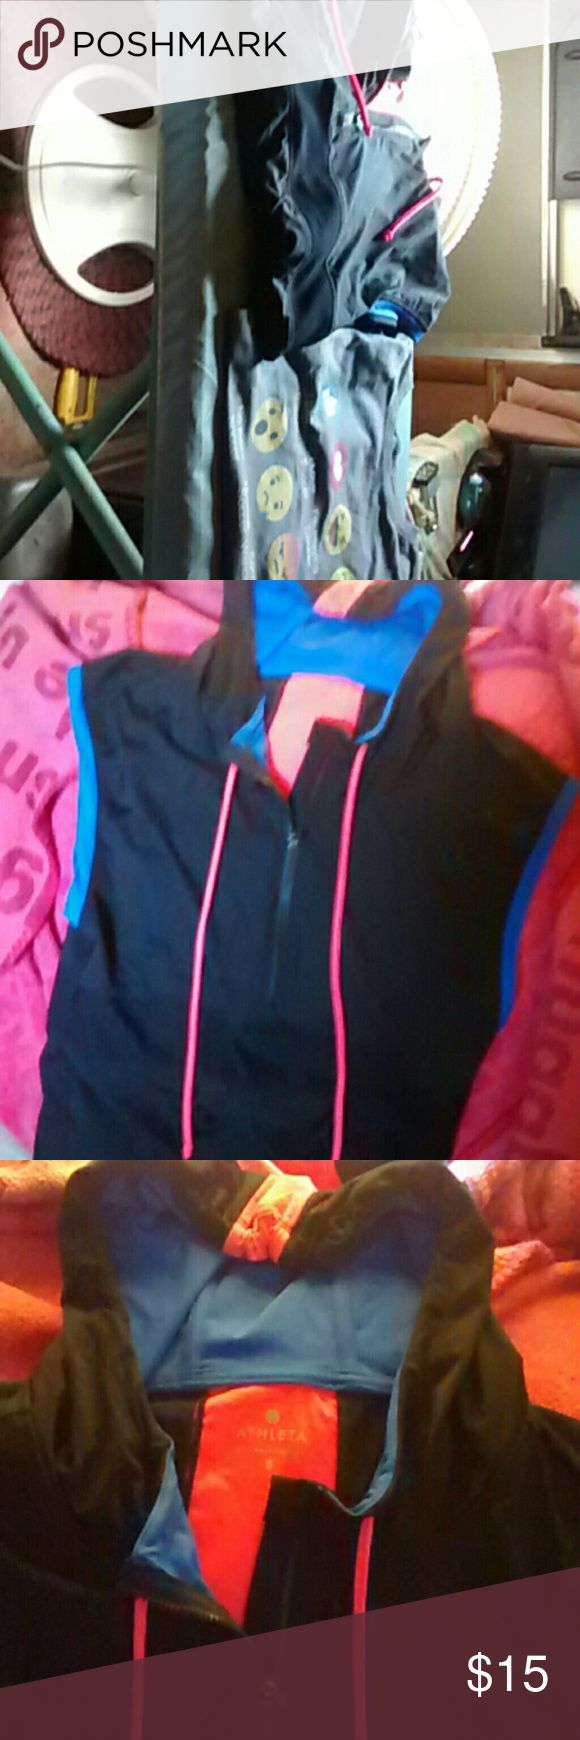 2 top bundle. Size  Small For sale, two wonderful tops. The first one is a athletic top with a hood. the colors are black electric blue and a bright Peach.By Athleta. Top number 2 is a grey shirt with different emojis talking about soccer. Both in excellent preowned condition. Please note that we do have pets and my husband is a smoker. Ask any questions you may have. Have a fantastic day. Tops Sweatshirts & Hoodies